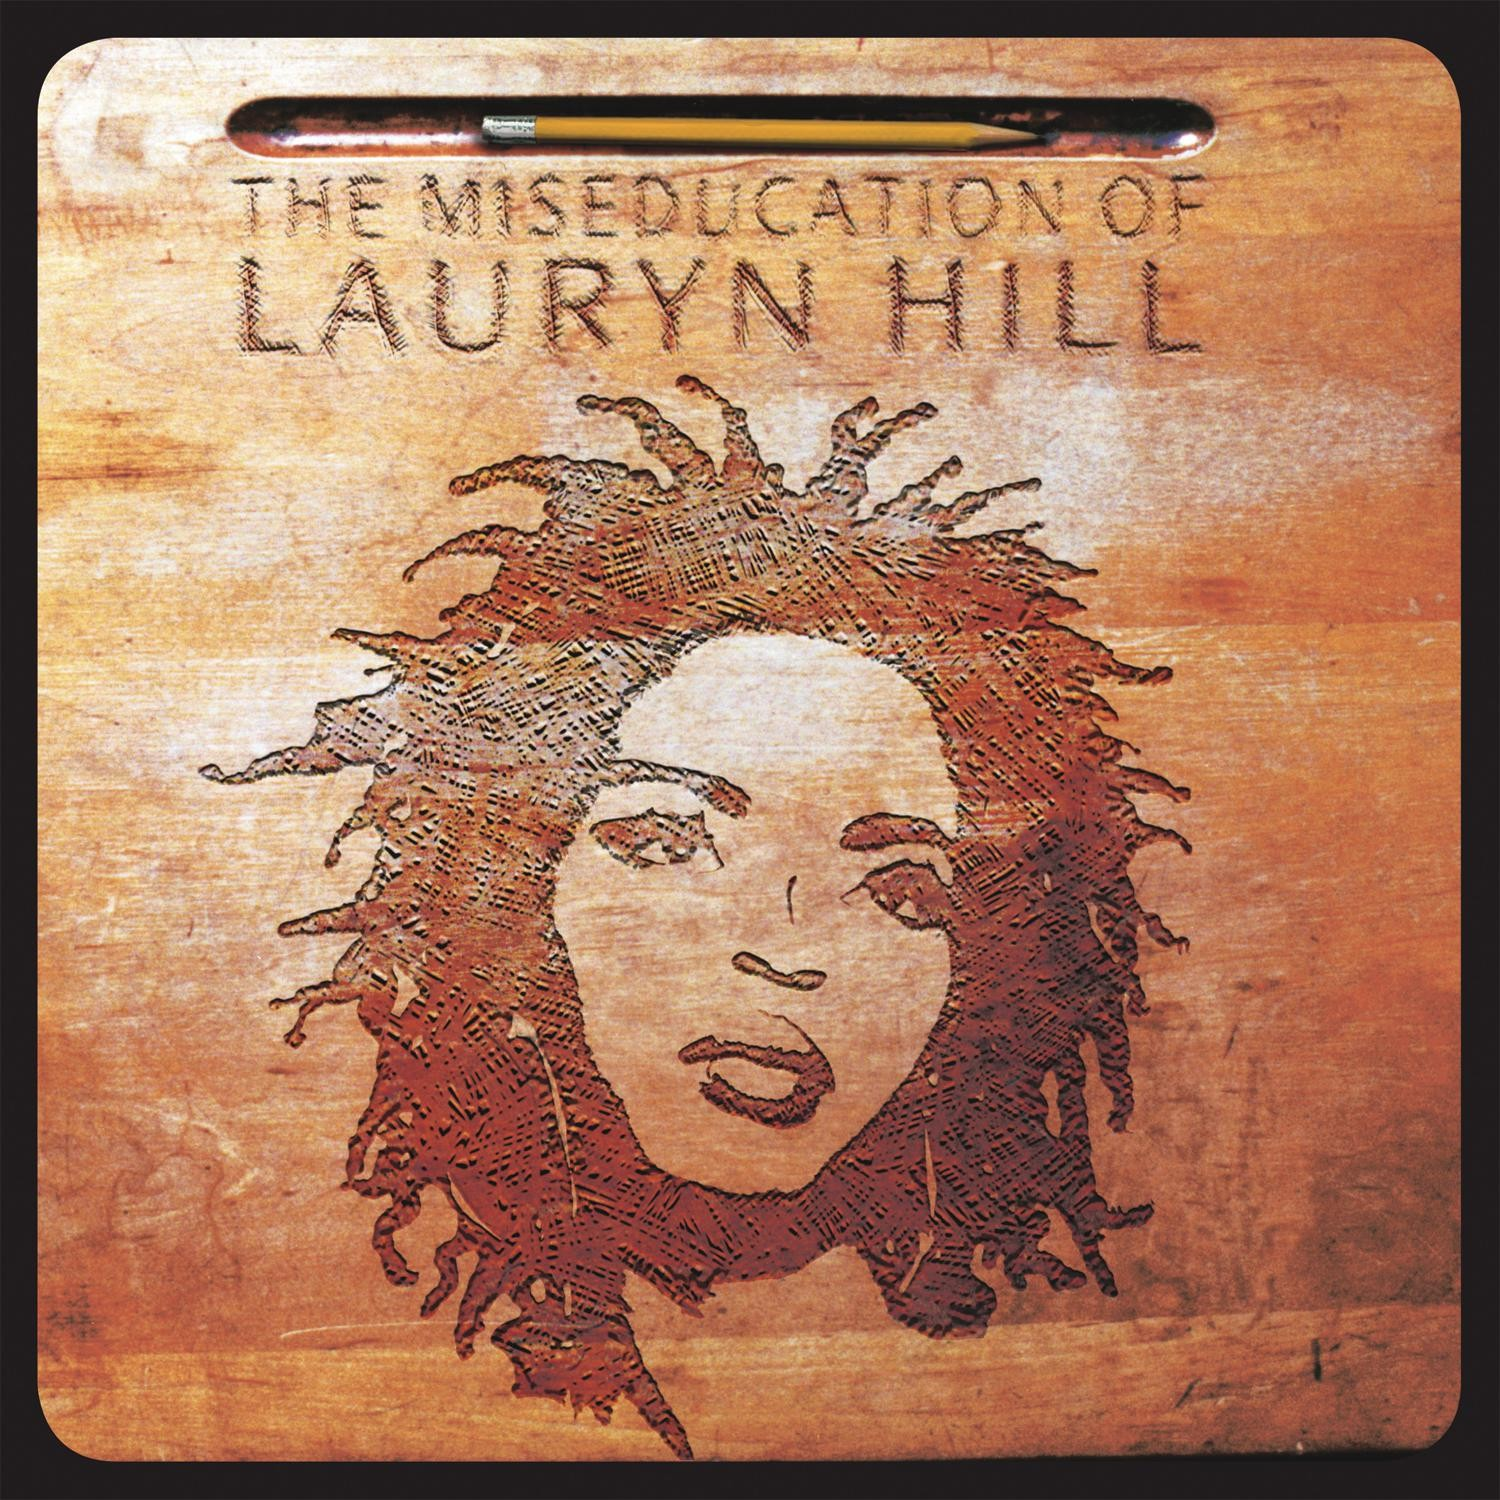 Lauryn Hill - The Miseducation Of Lauryn Hill 2XLP